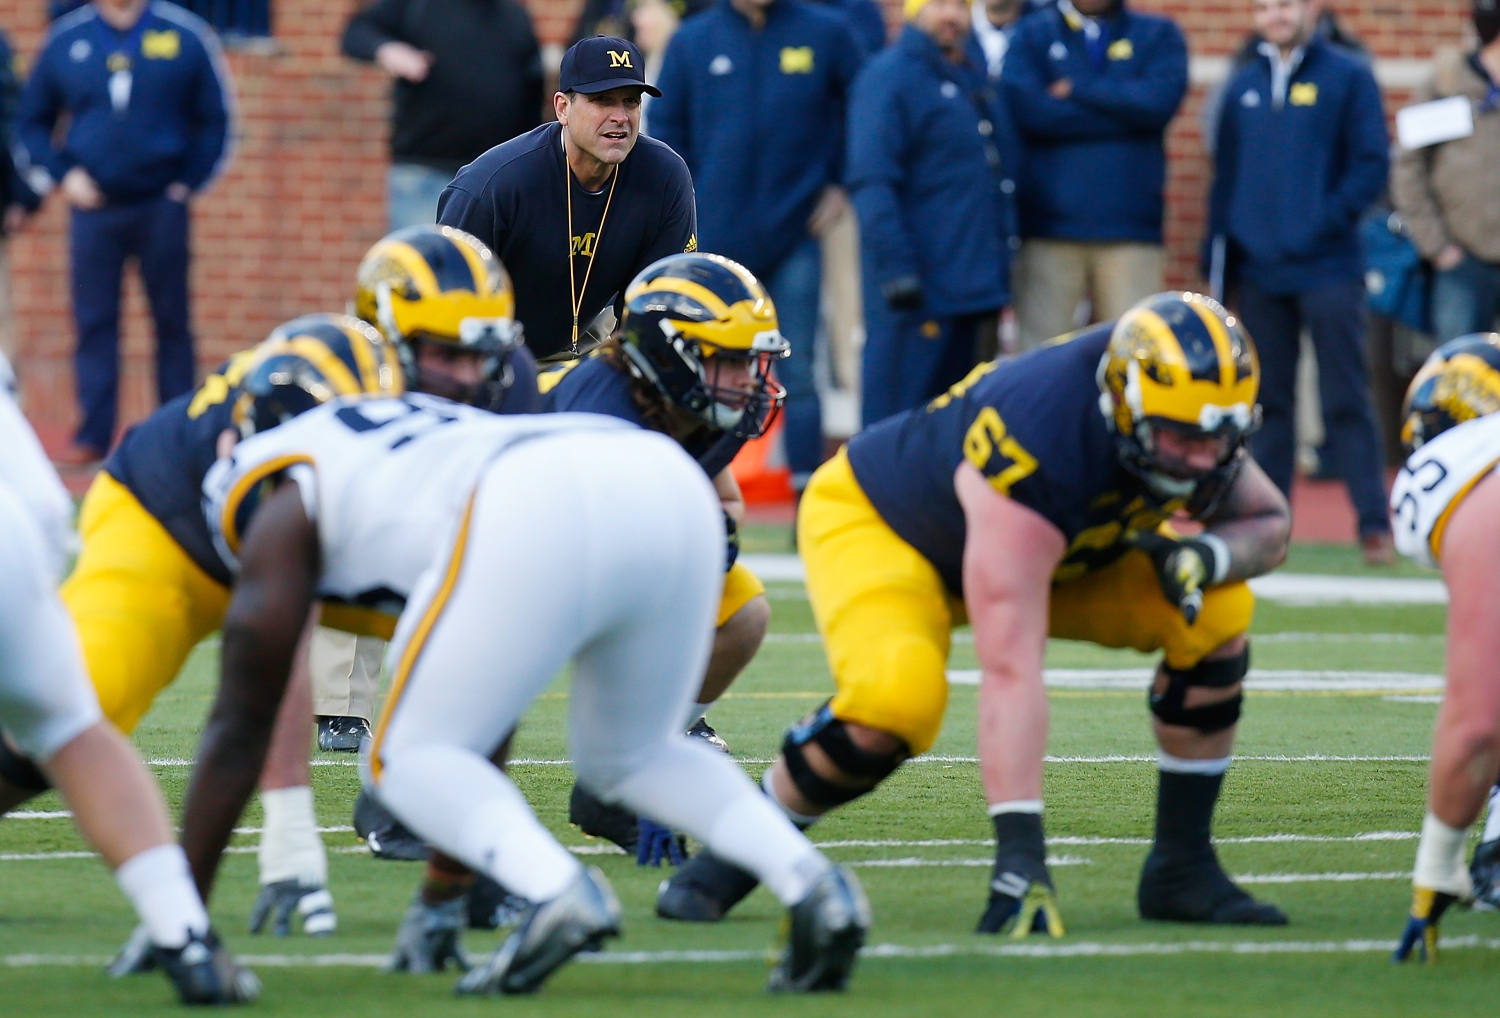 One dollar bet on michigan to win the national title adjarabet mobile betting news